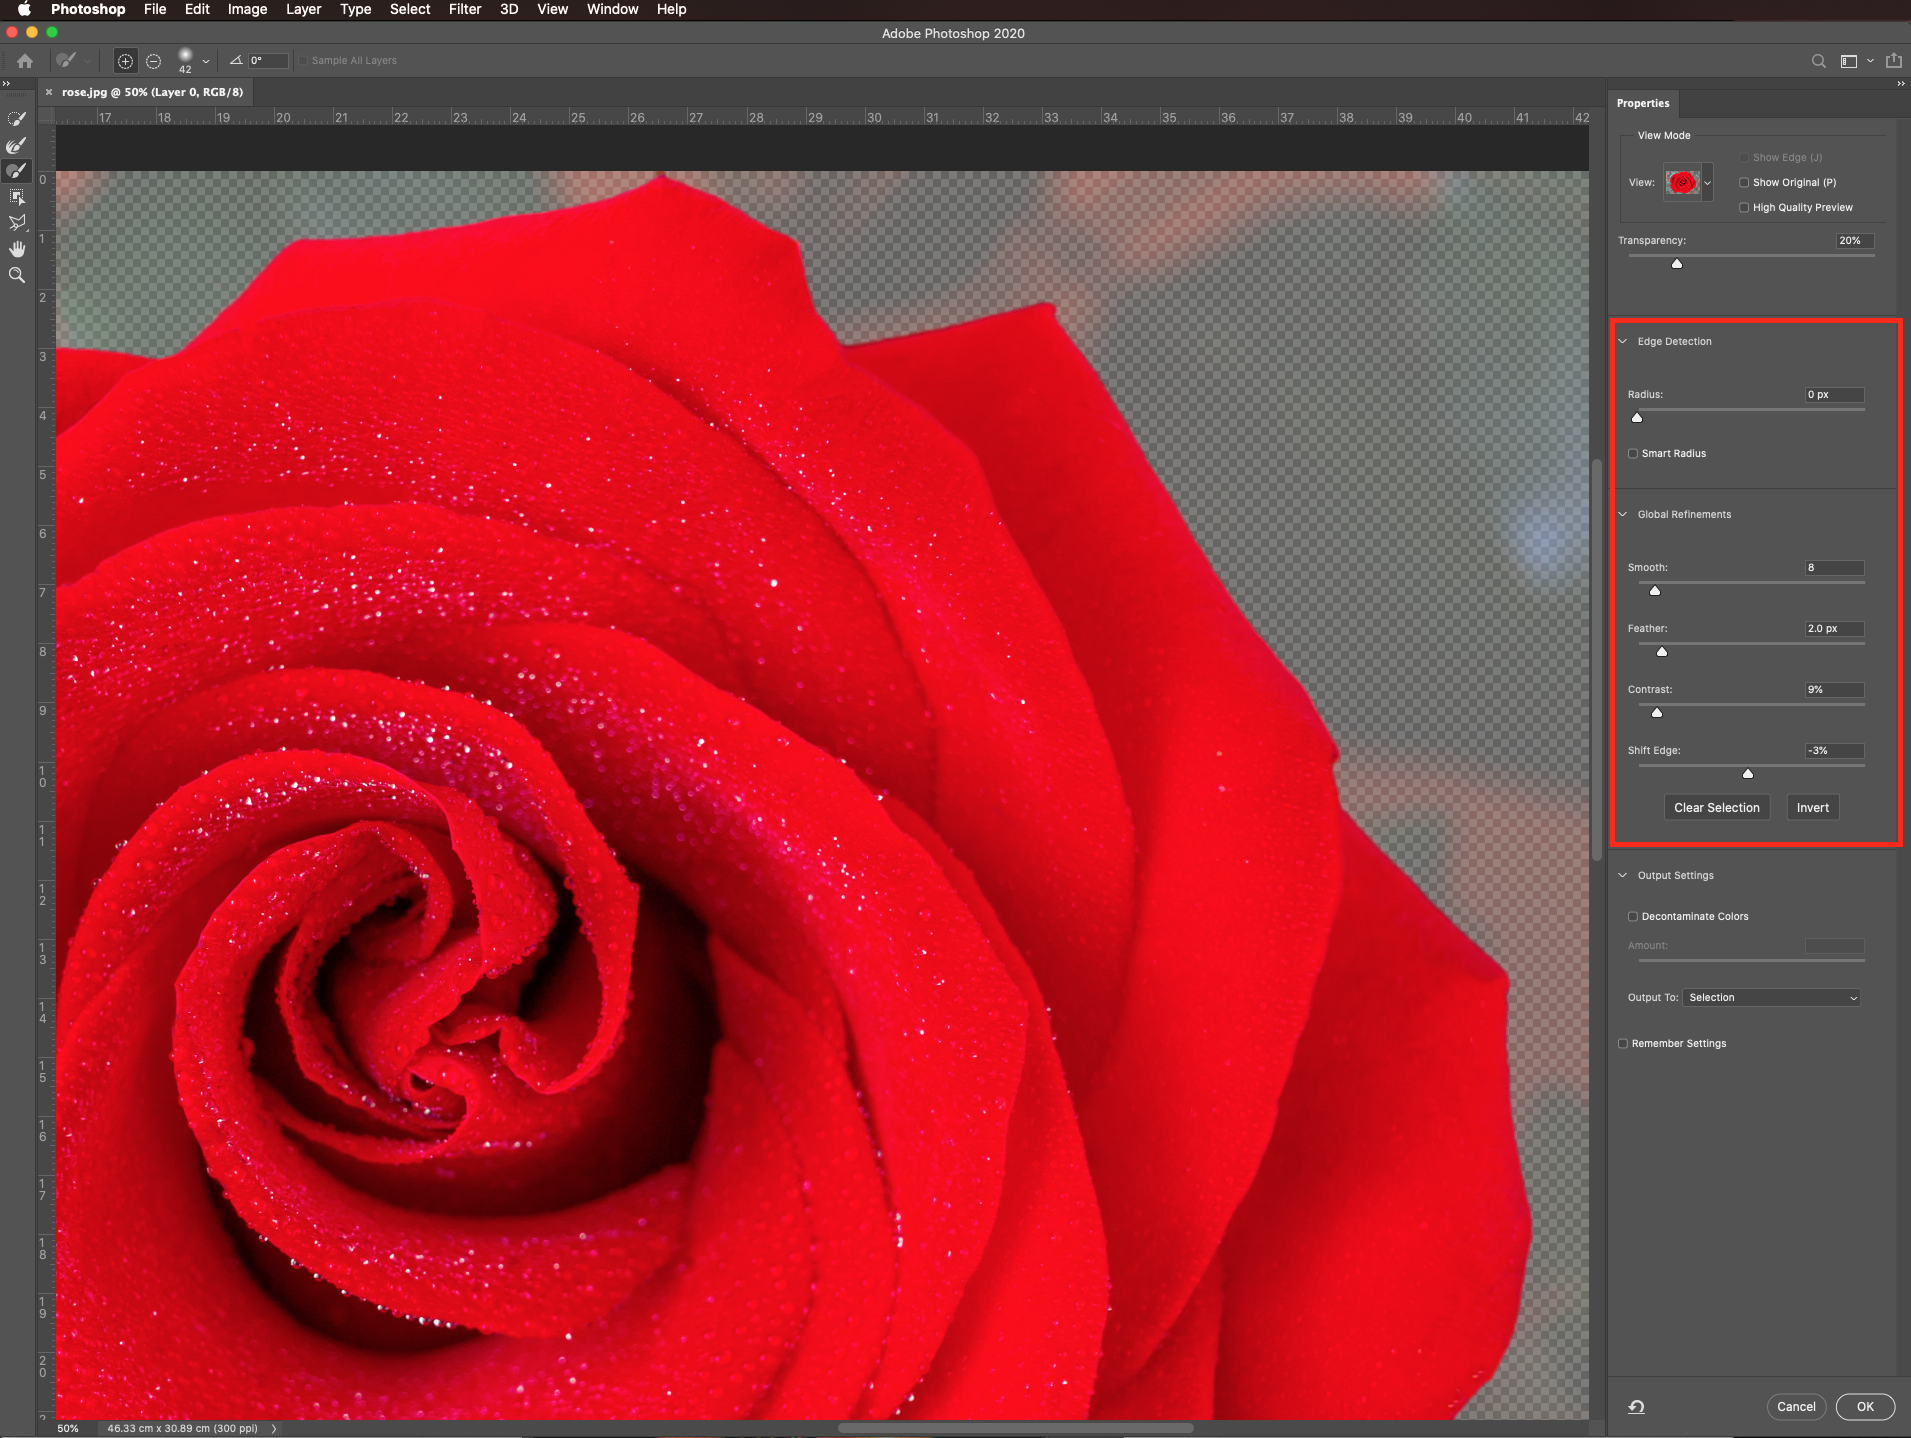 Mask settings in Photoshop